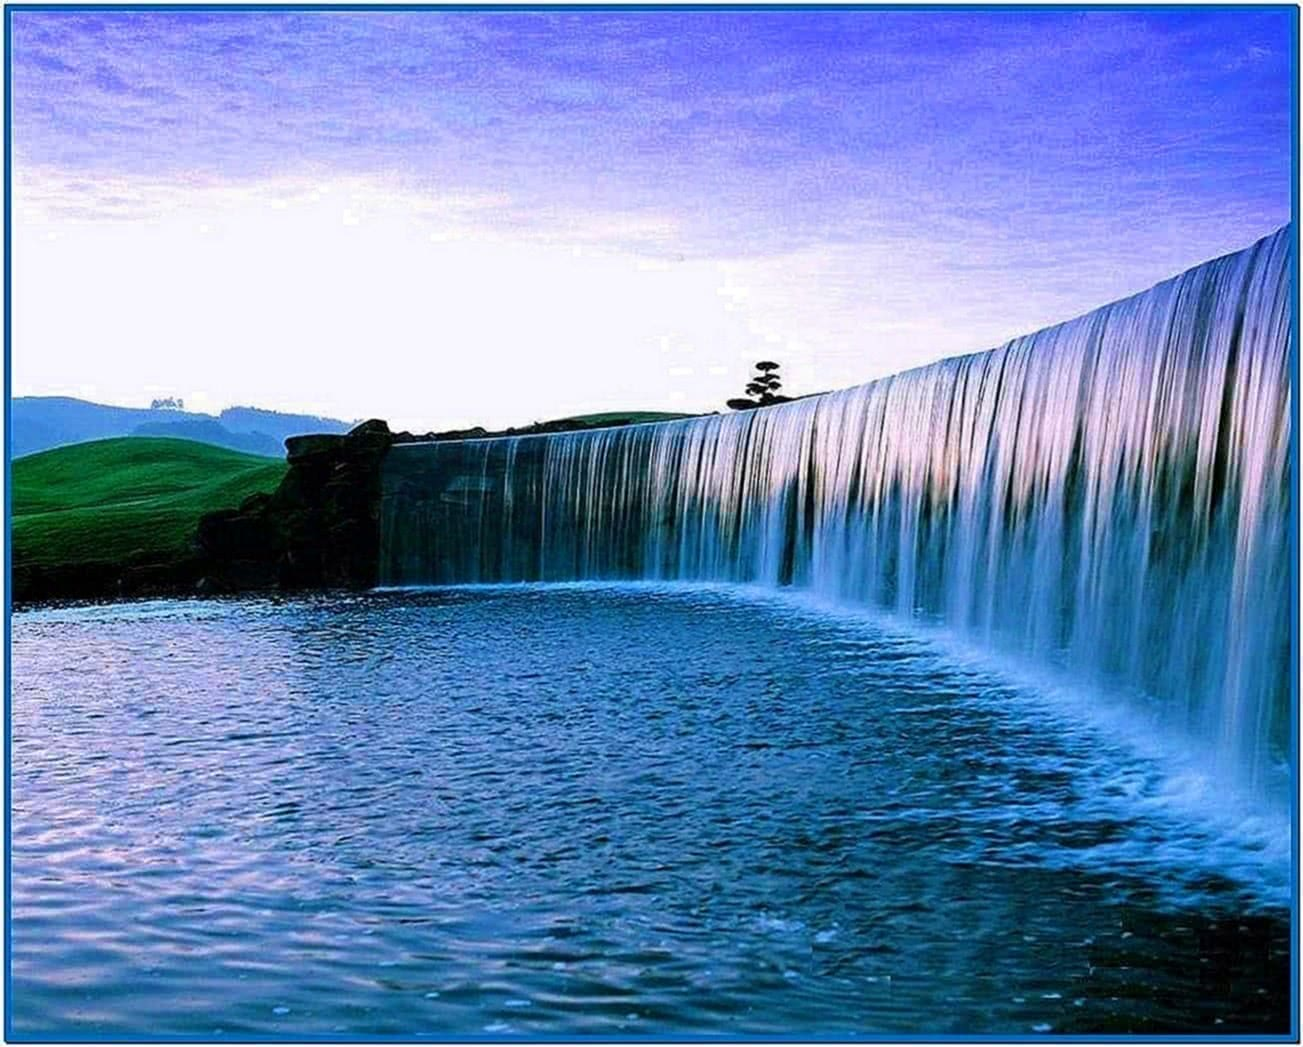 Waterfall Screensaver PC